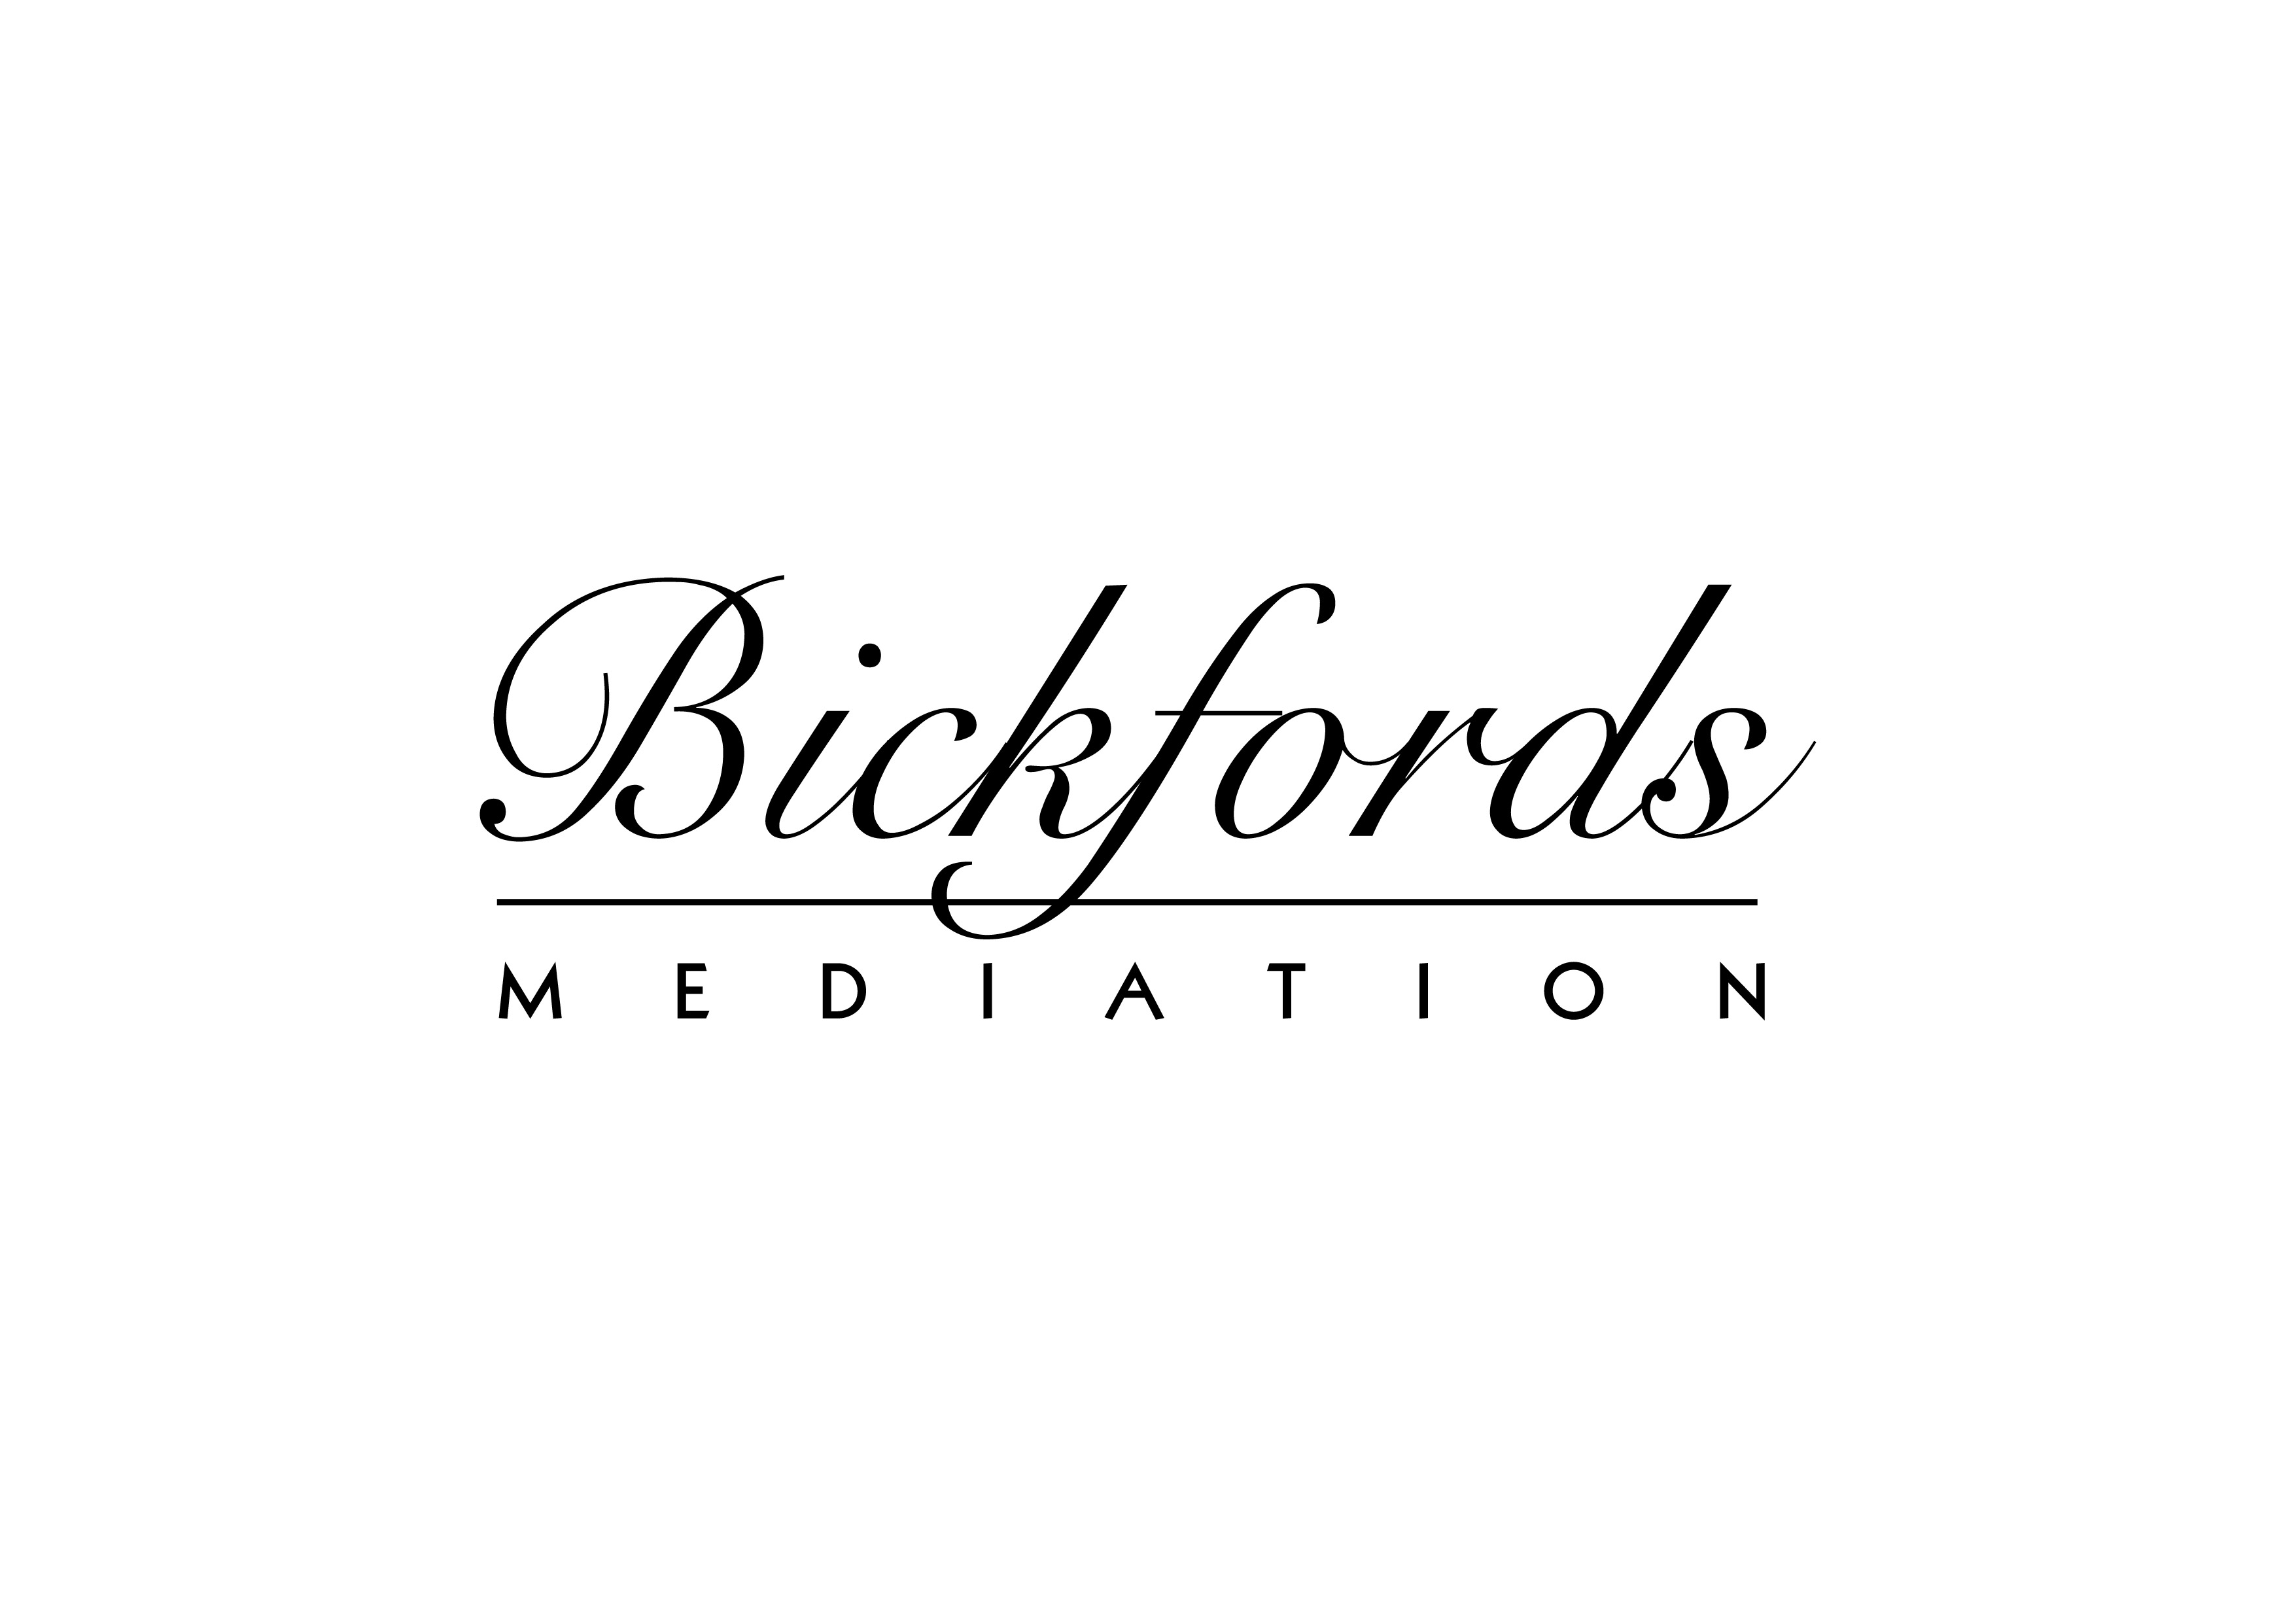 Bickfords Mediation